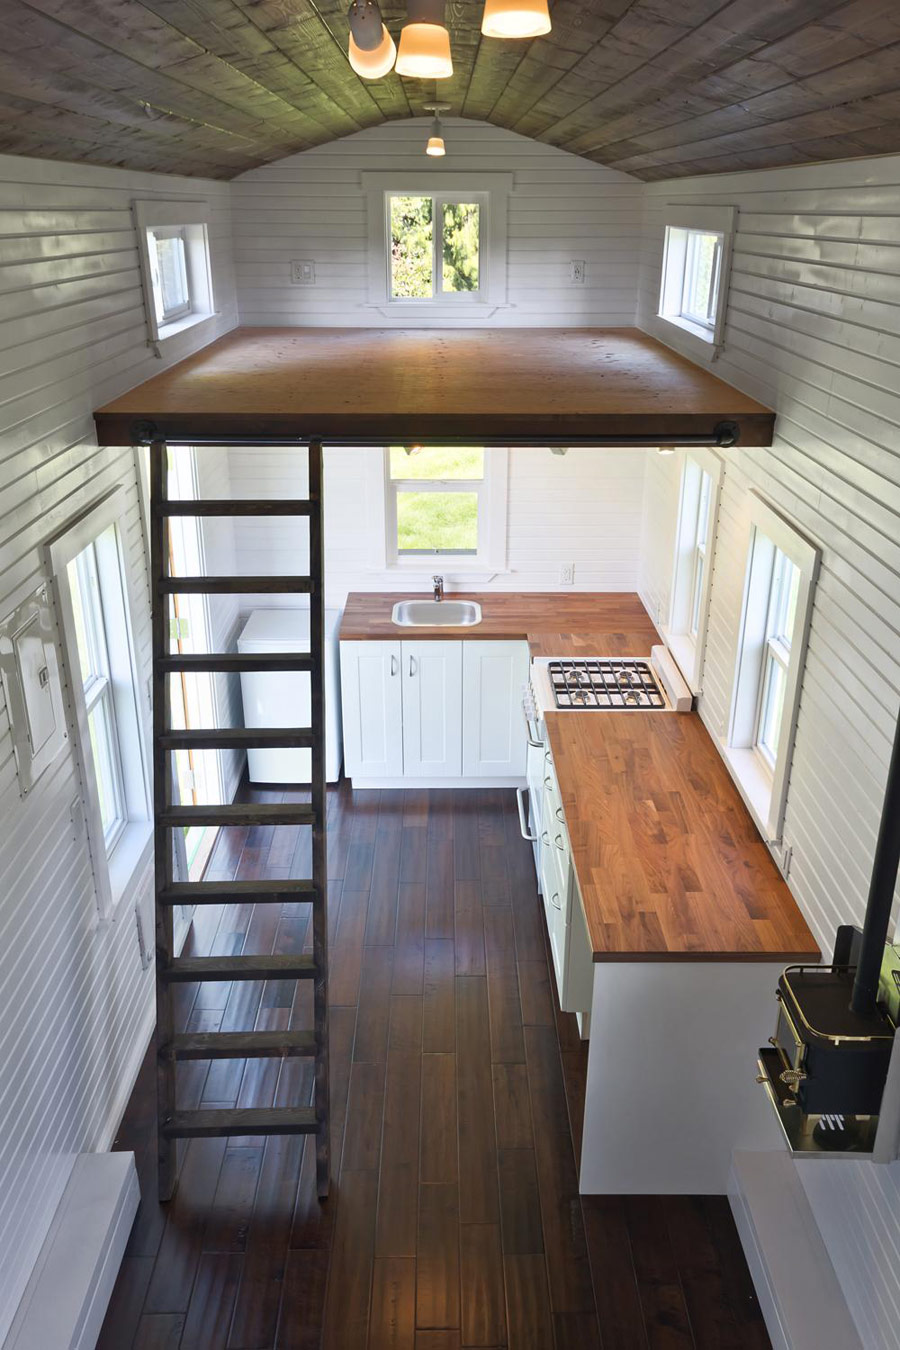 Astounding The Loft Tiny House Swoon Largest Home Design Picture Inspirations Pitcheantrous